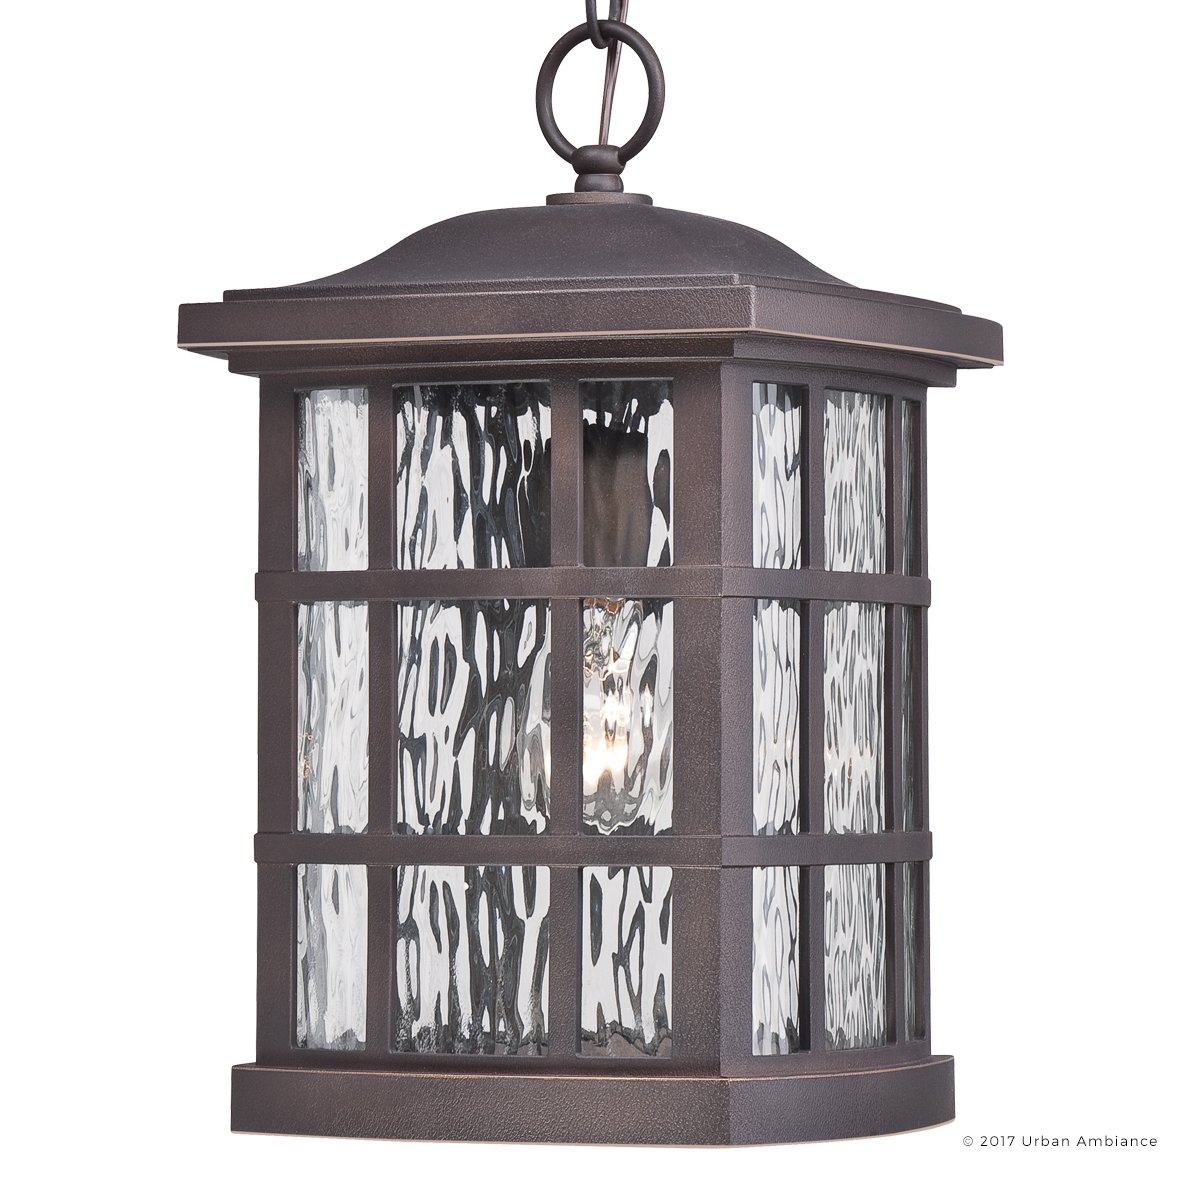 Luxury Craftsman Outdoor Pendant Light, Medium Size: 15''H x 9.5''W, with Tudor Style Elements, Highly-Detailed Design, Oil Rubbed Parisian Bronze Finish and Water Glass, UQL1251 by Urban Ambiance